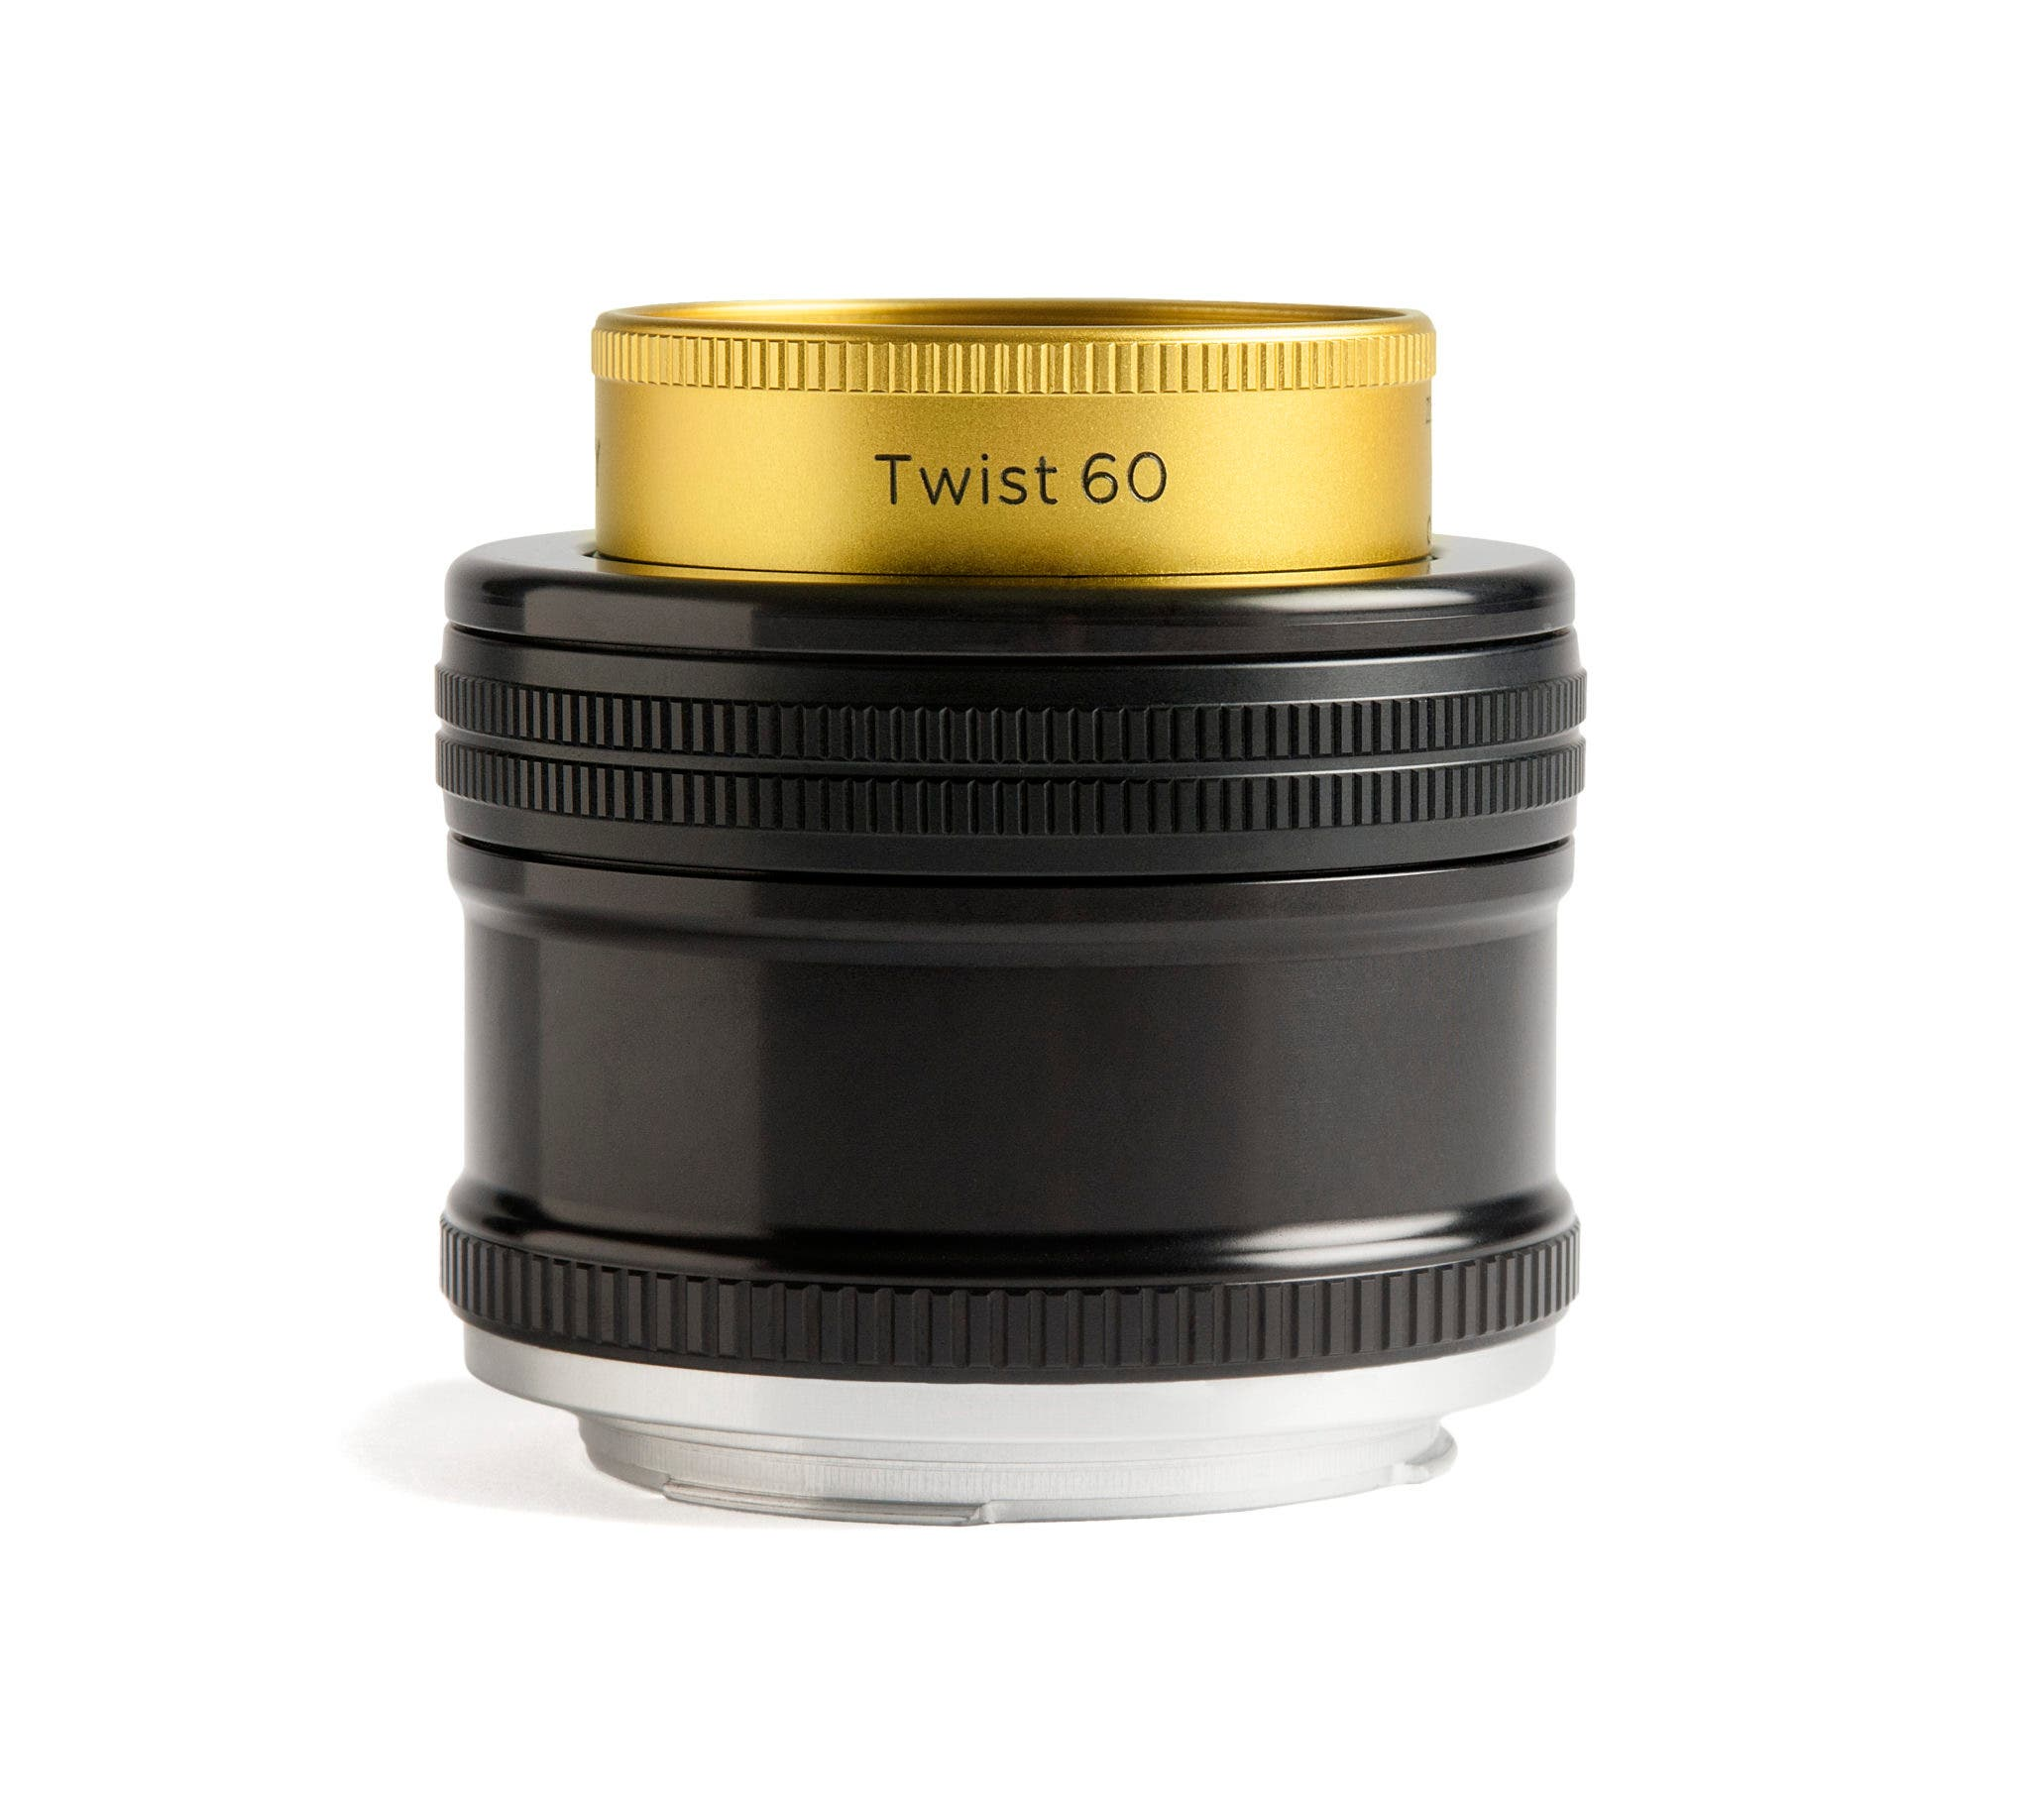 The Lensbaby Twist 60 Lens is a Brand New Petzval Lens